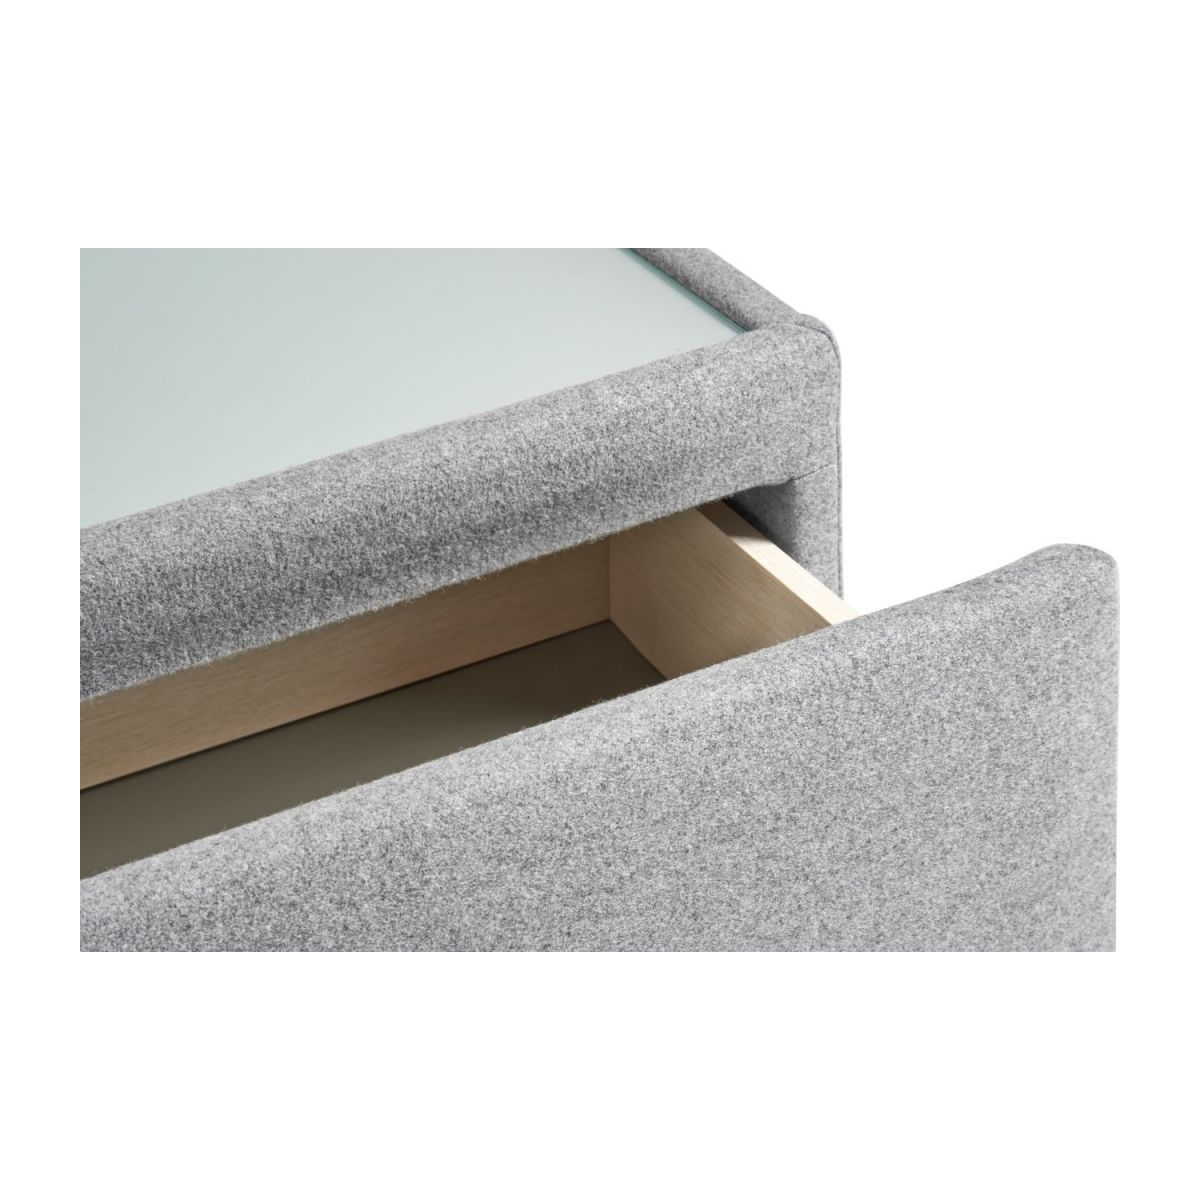 Table de chevet en feutrine - Gris n°8